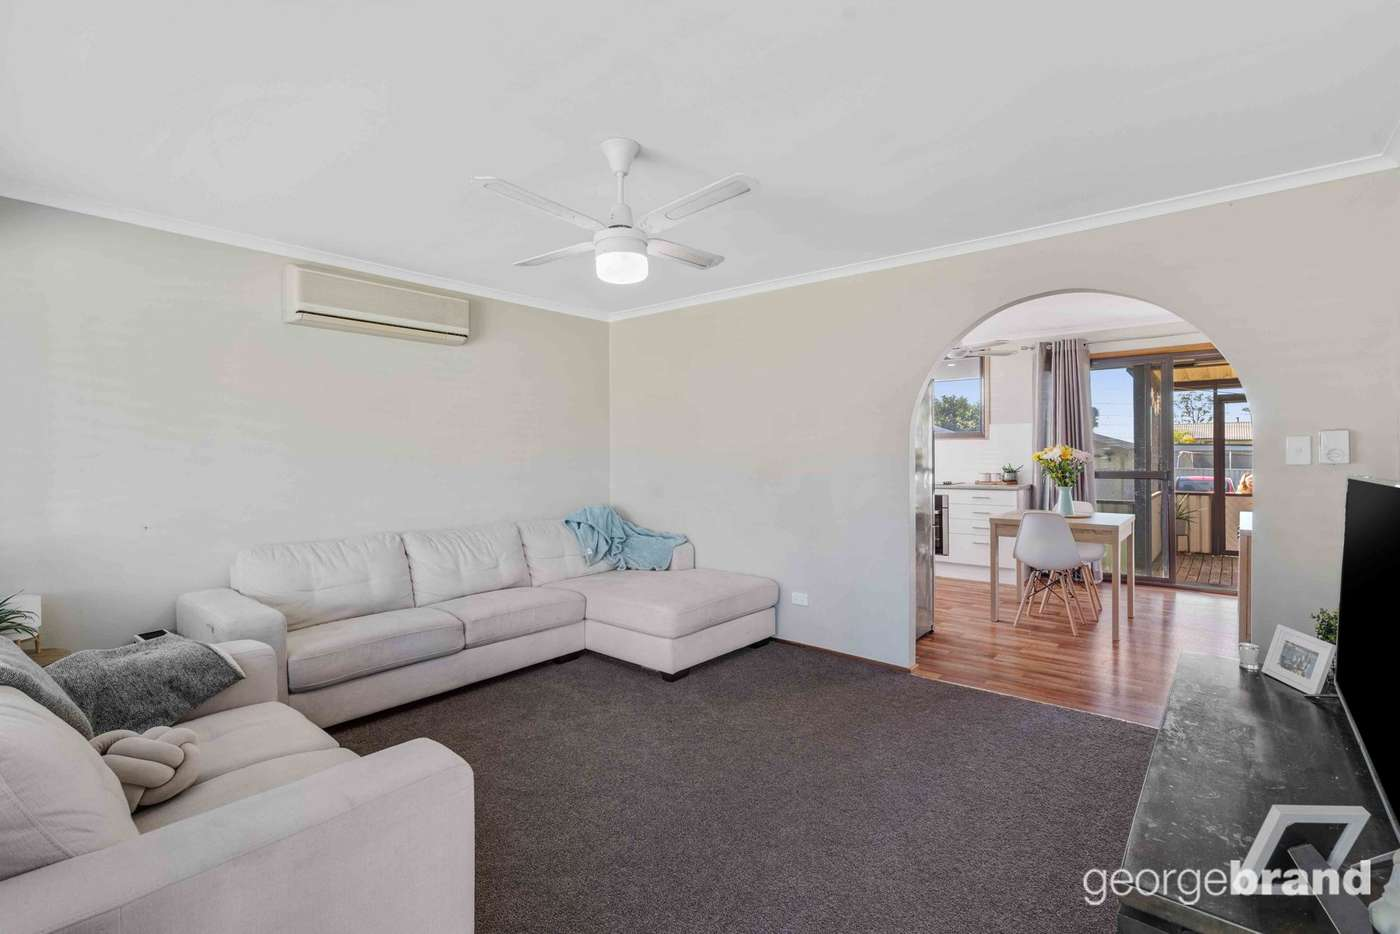 Fifth view of Homely house listing, 26 Warrina Avenue, Summerland Point NSW 2259